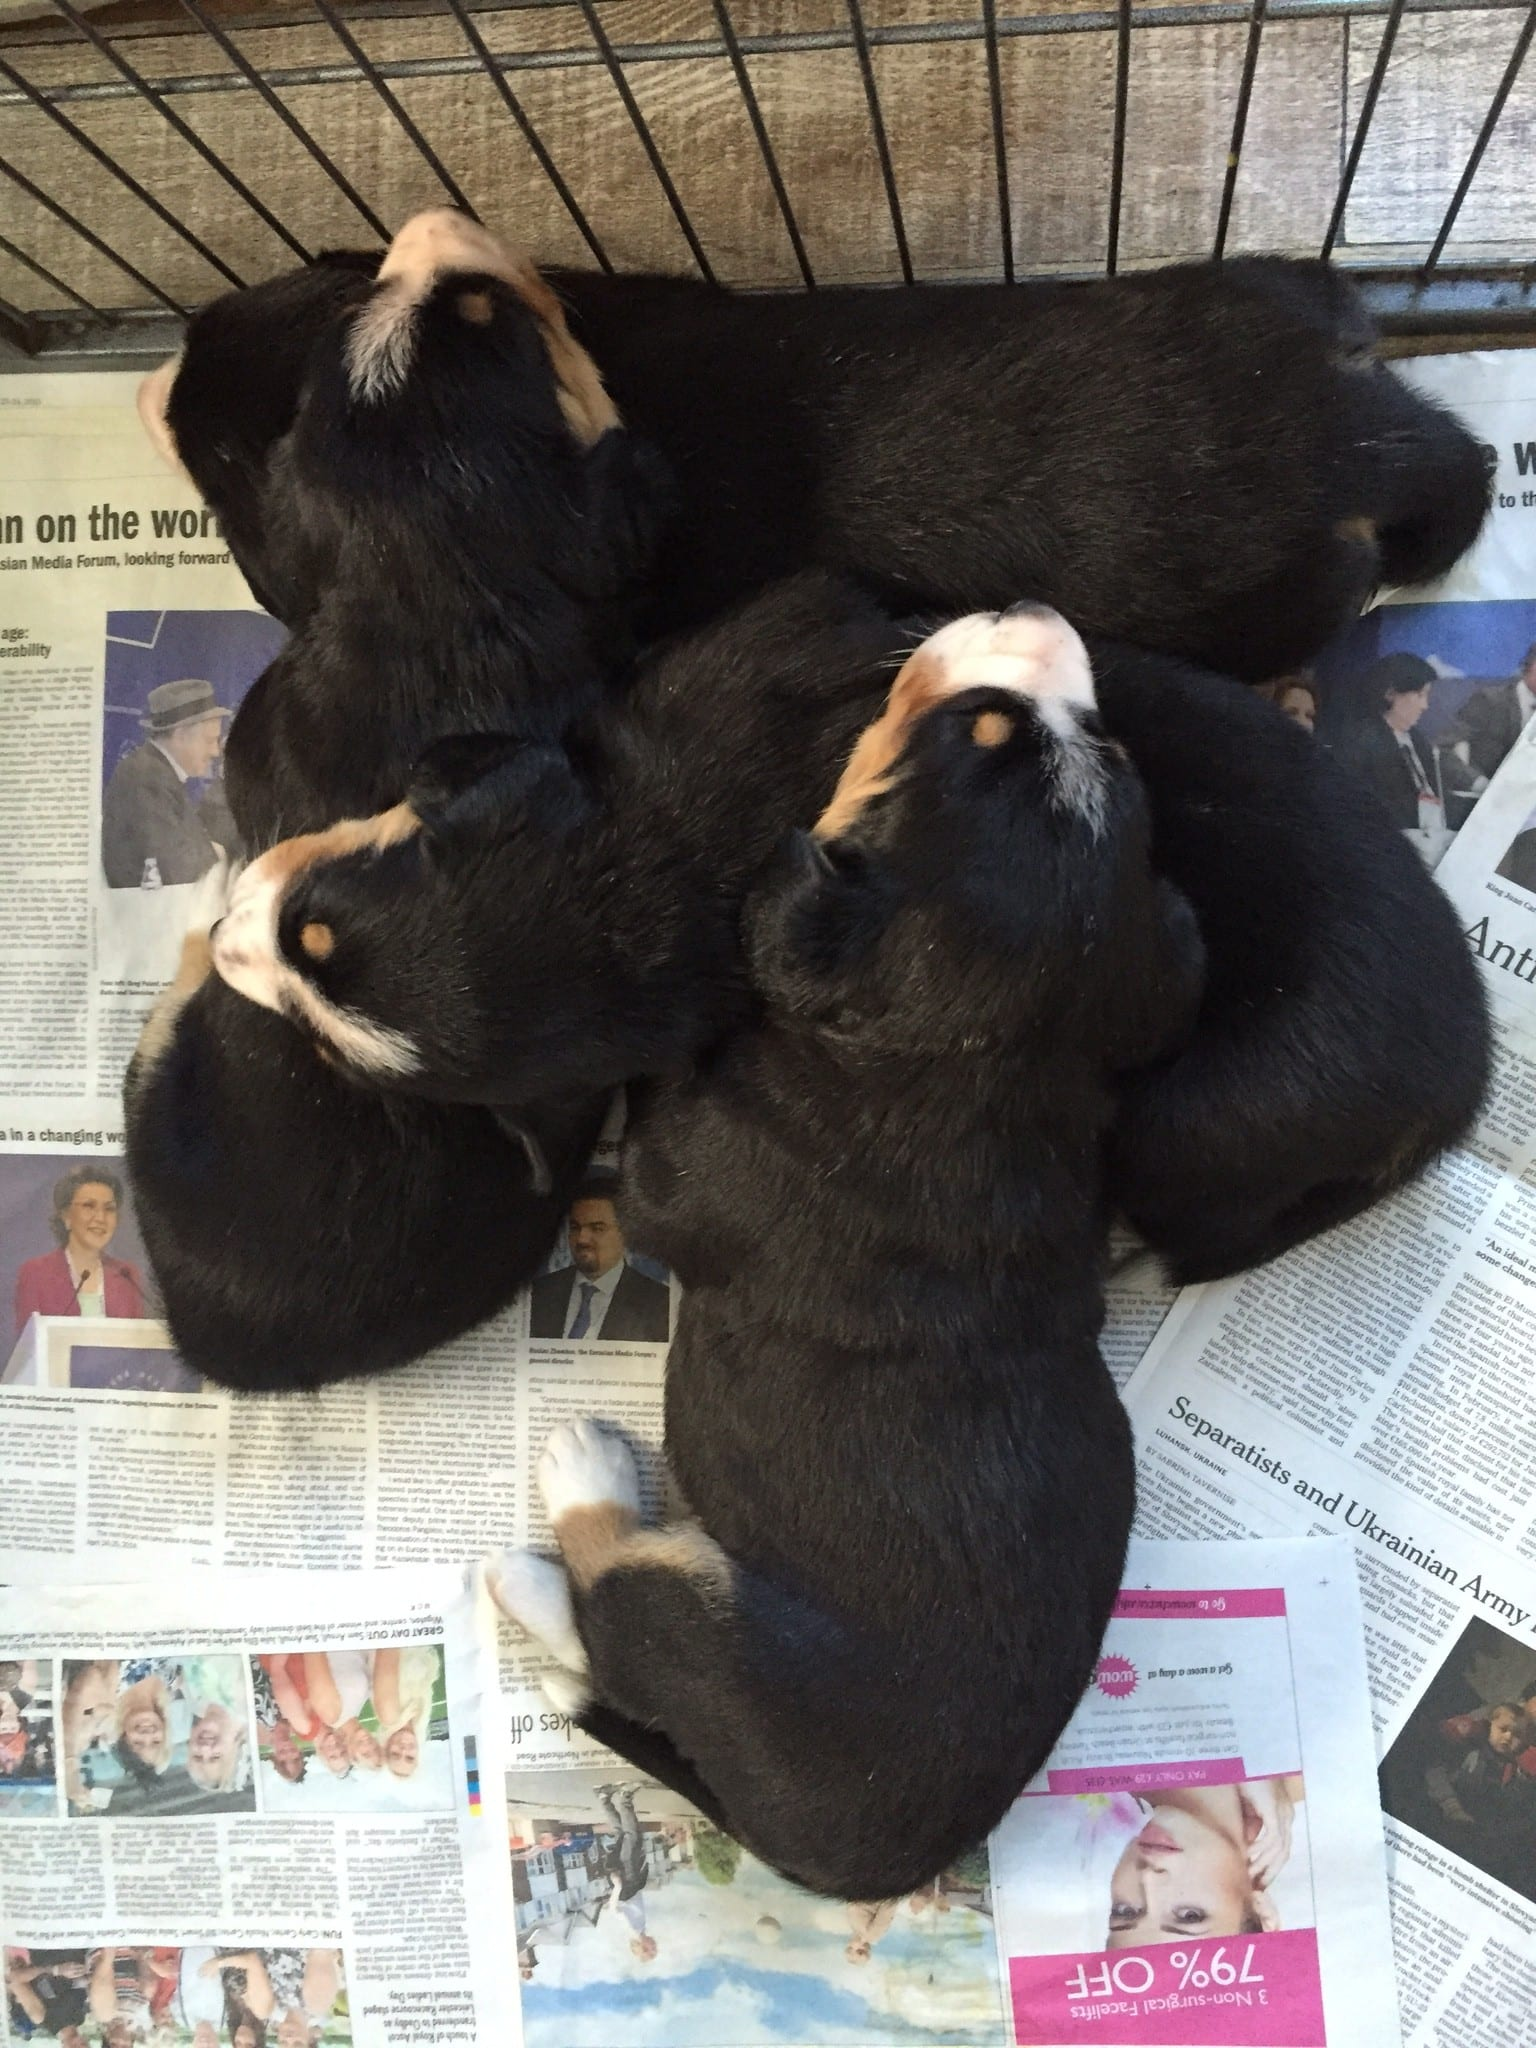 A pile of puppies - Duchess on top, D'Artagnan at the bottom